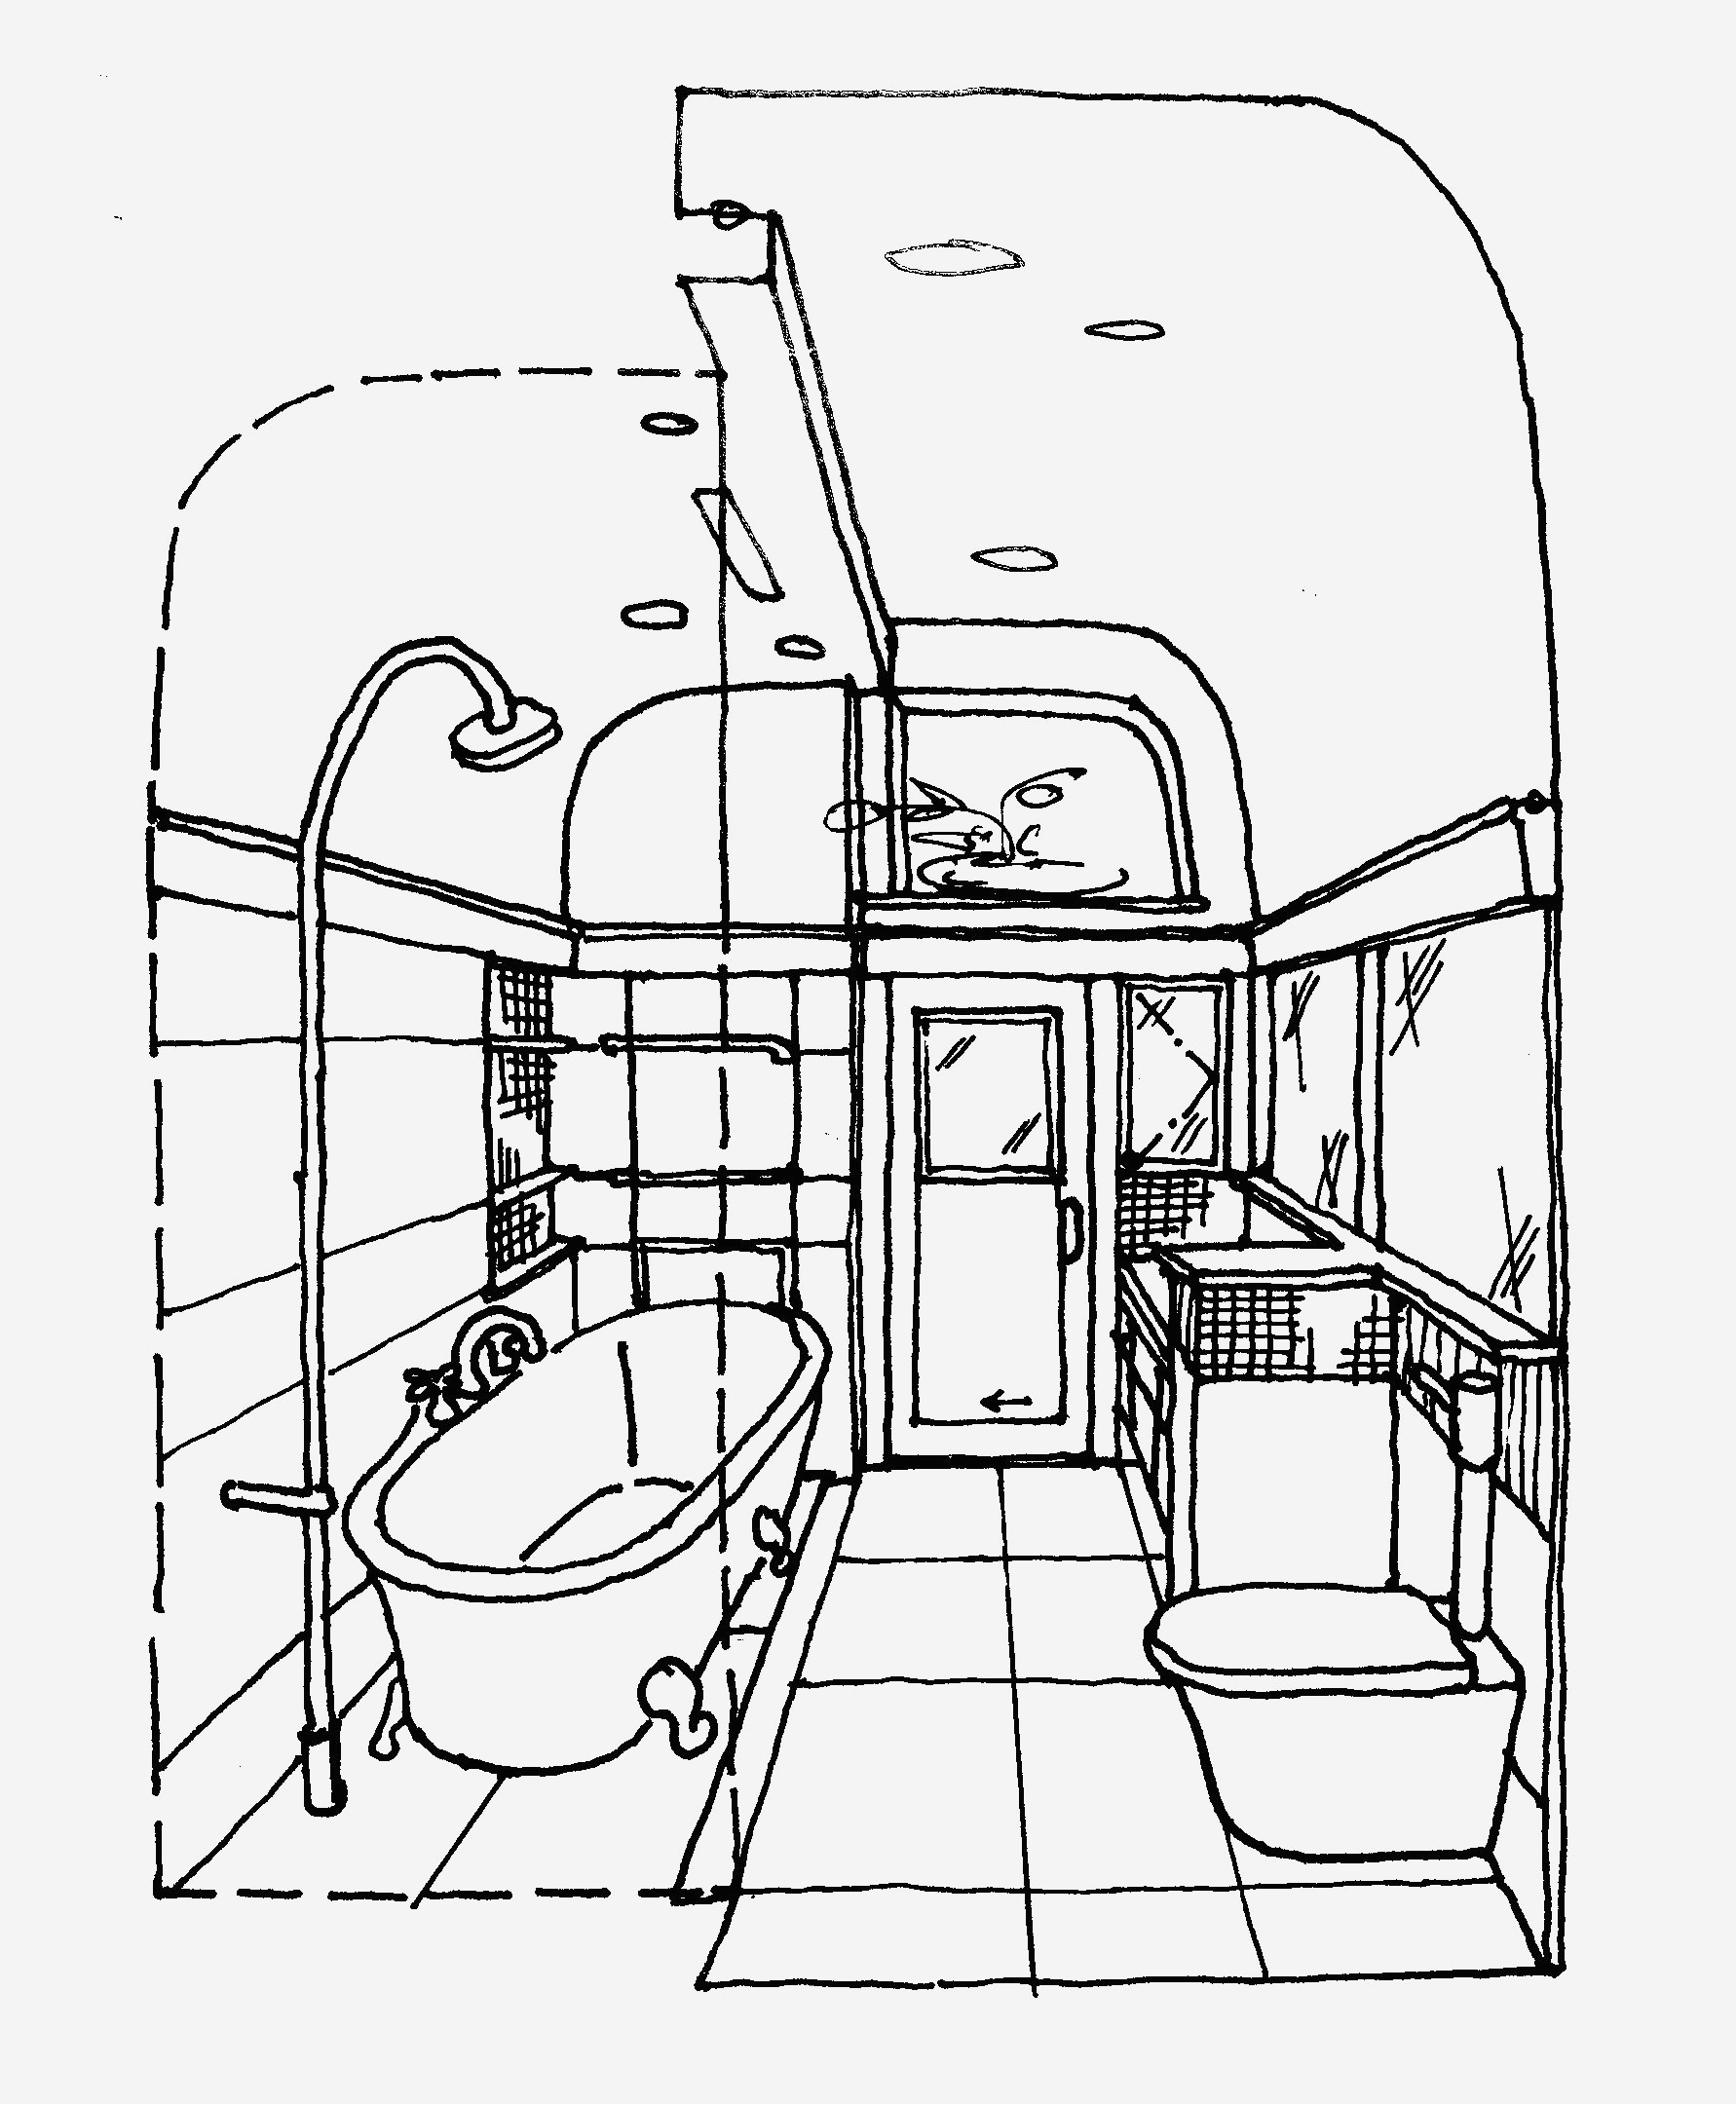 The Best Free Bathroom Drawing Images Download From 417